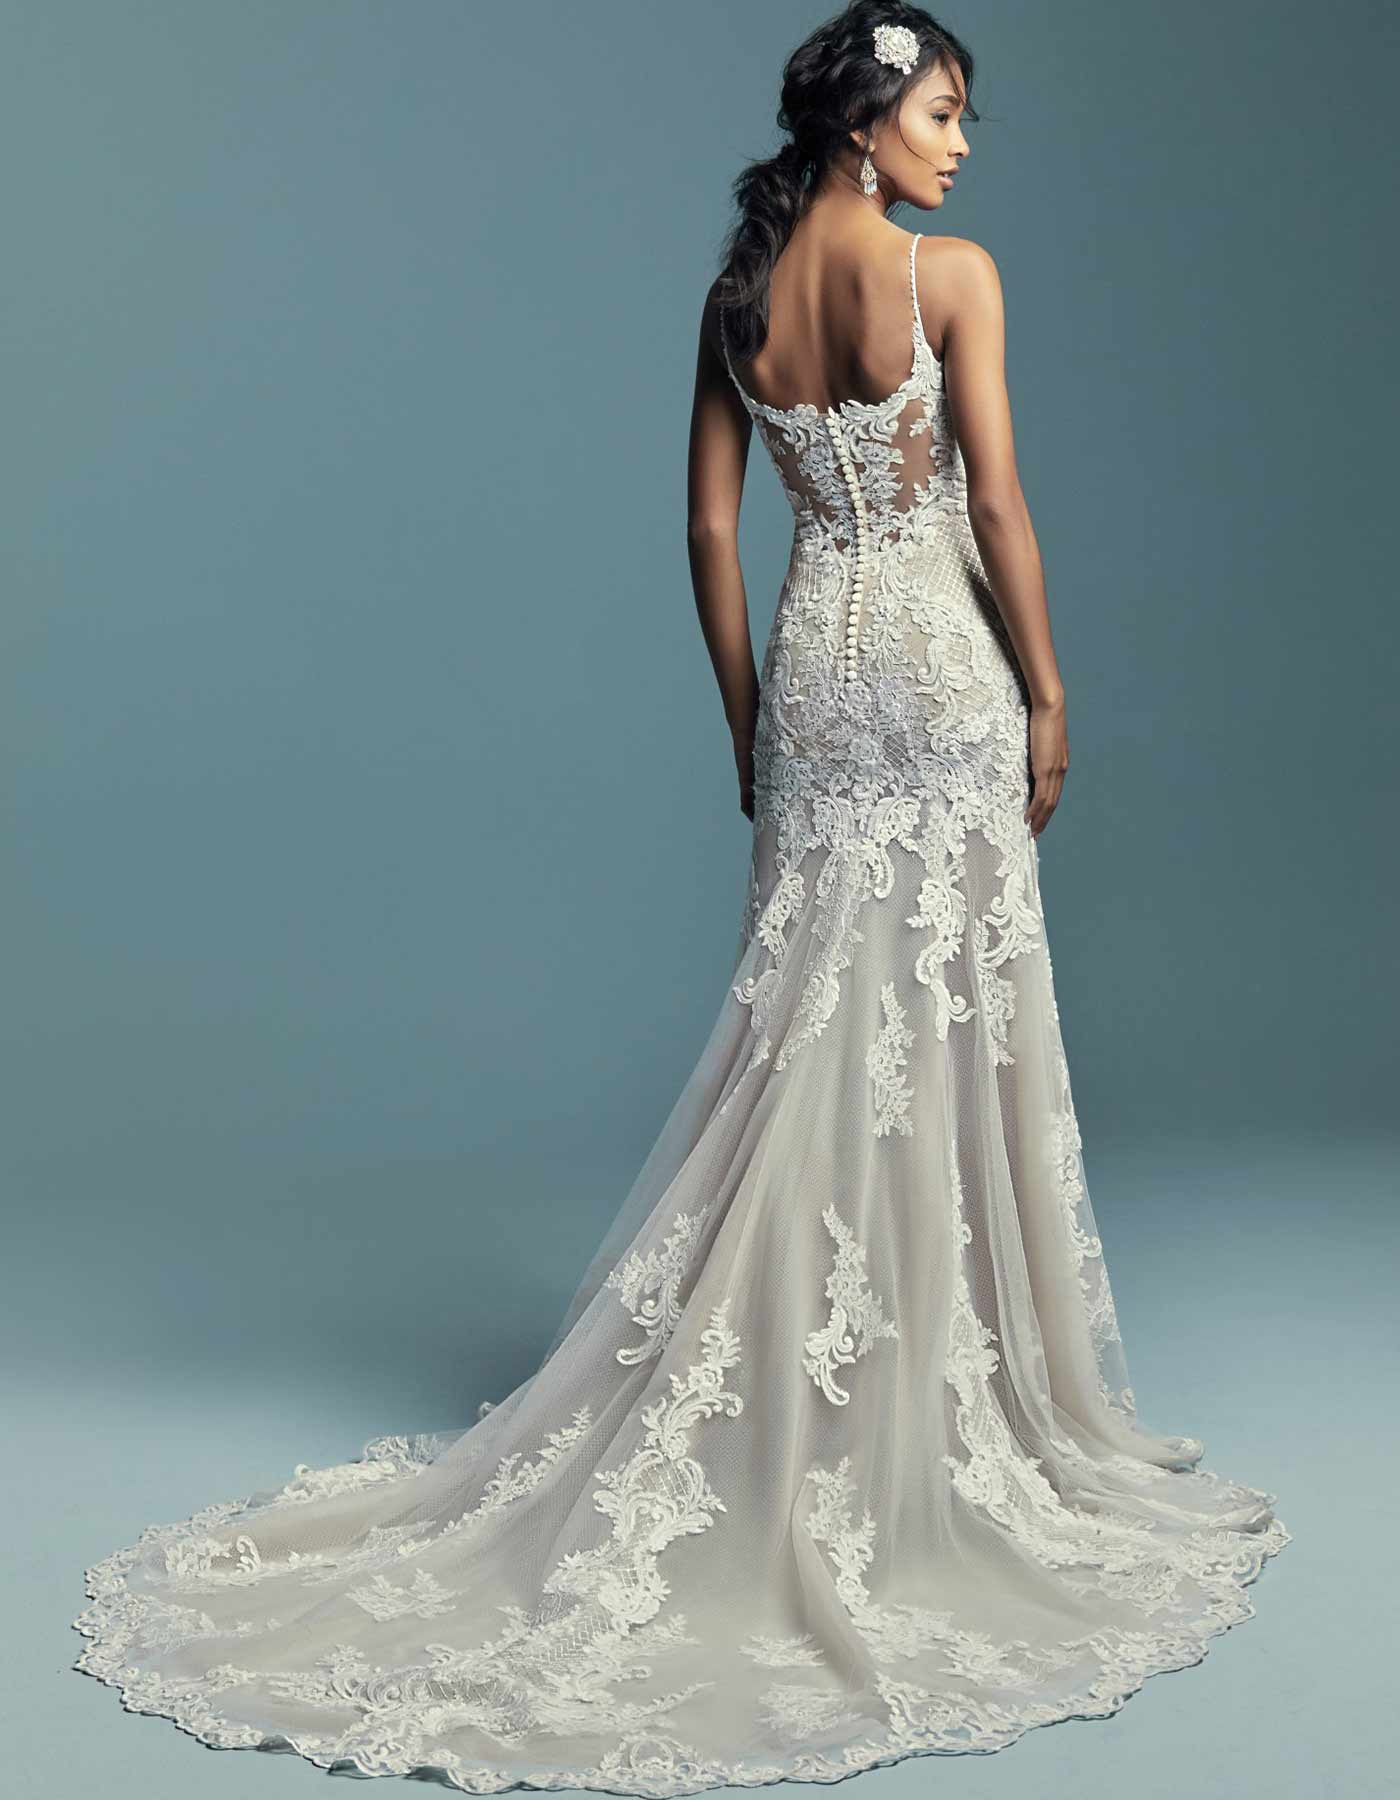 ABBIE MARIE by Maggie Sottero | Fit and Flare Wedding Gown